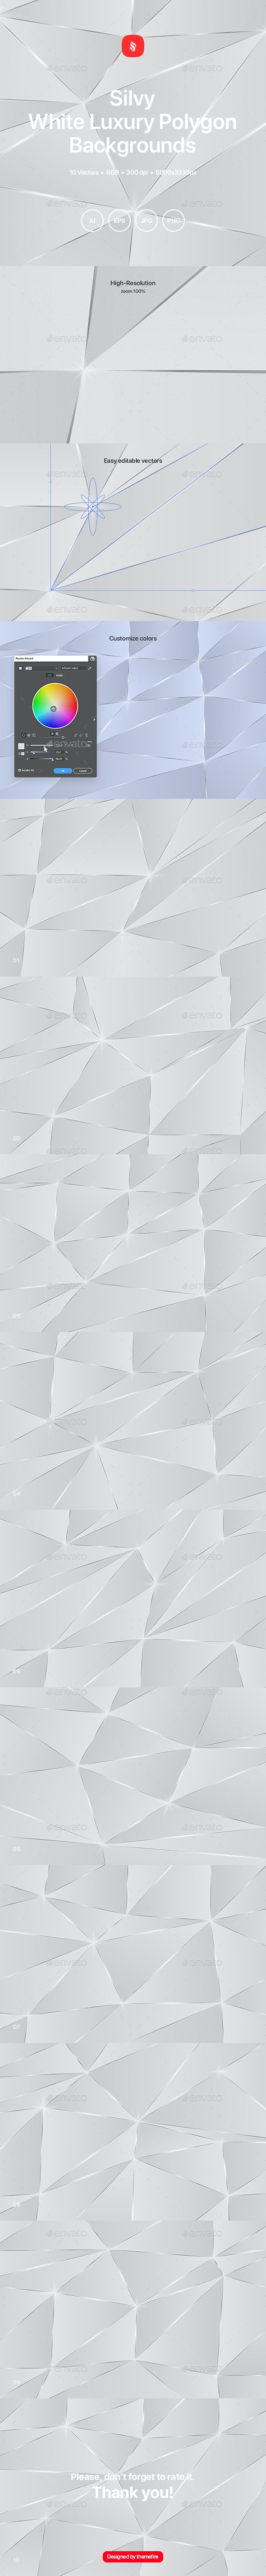 Silvy - White Luxury Polygon Backgrounds - Abstract Backgrounds